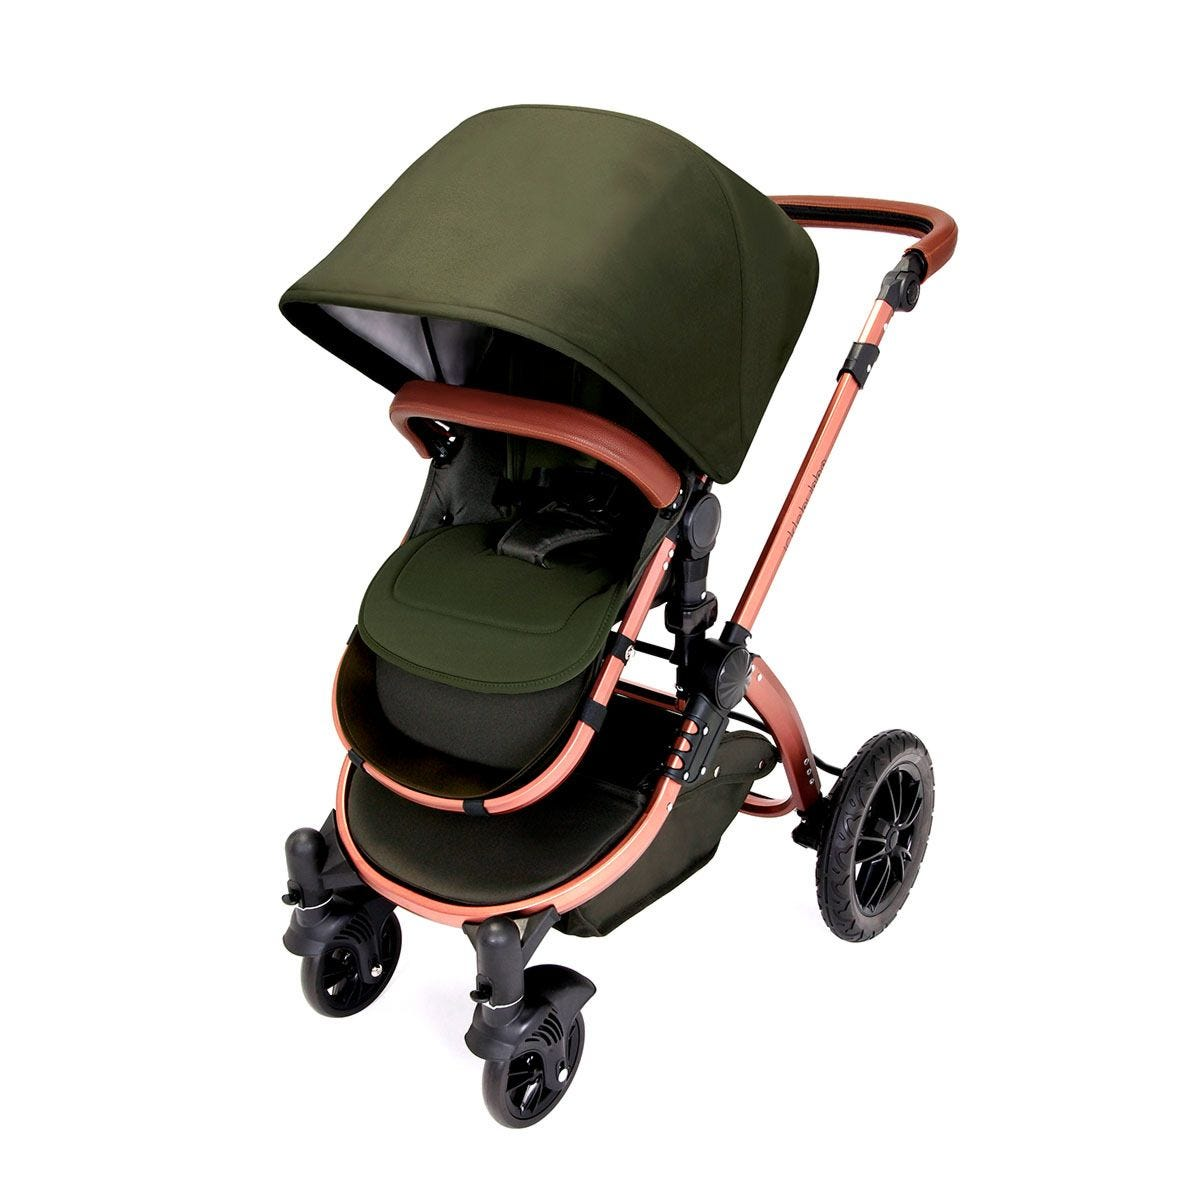 Ickle Bubba Stomp V4 i-Size Travel System with Isofix Base - Woodland on Bronze with Tan Handles